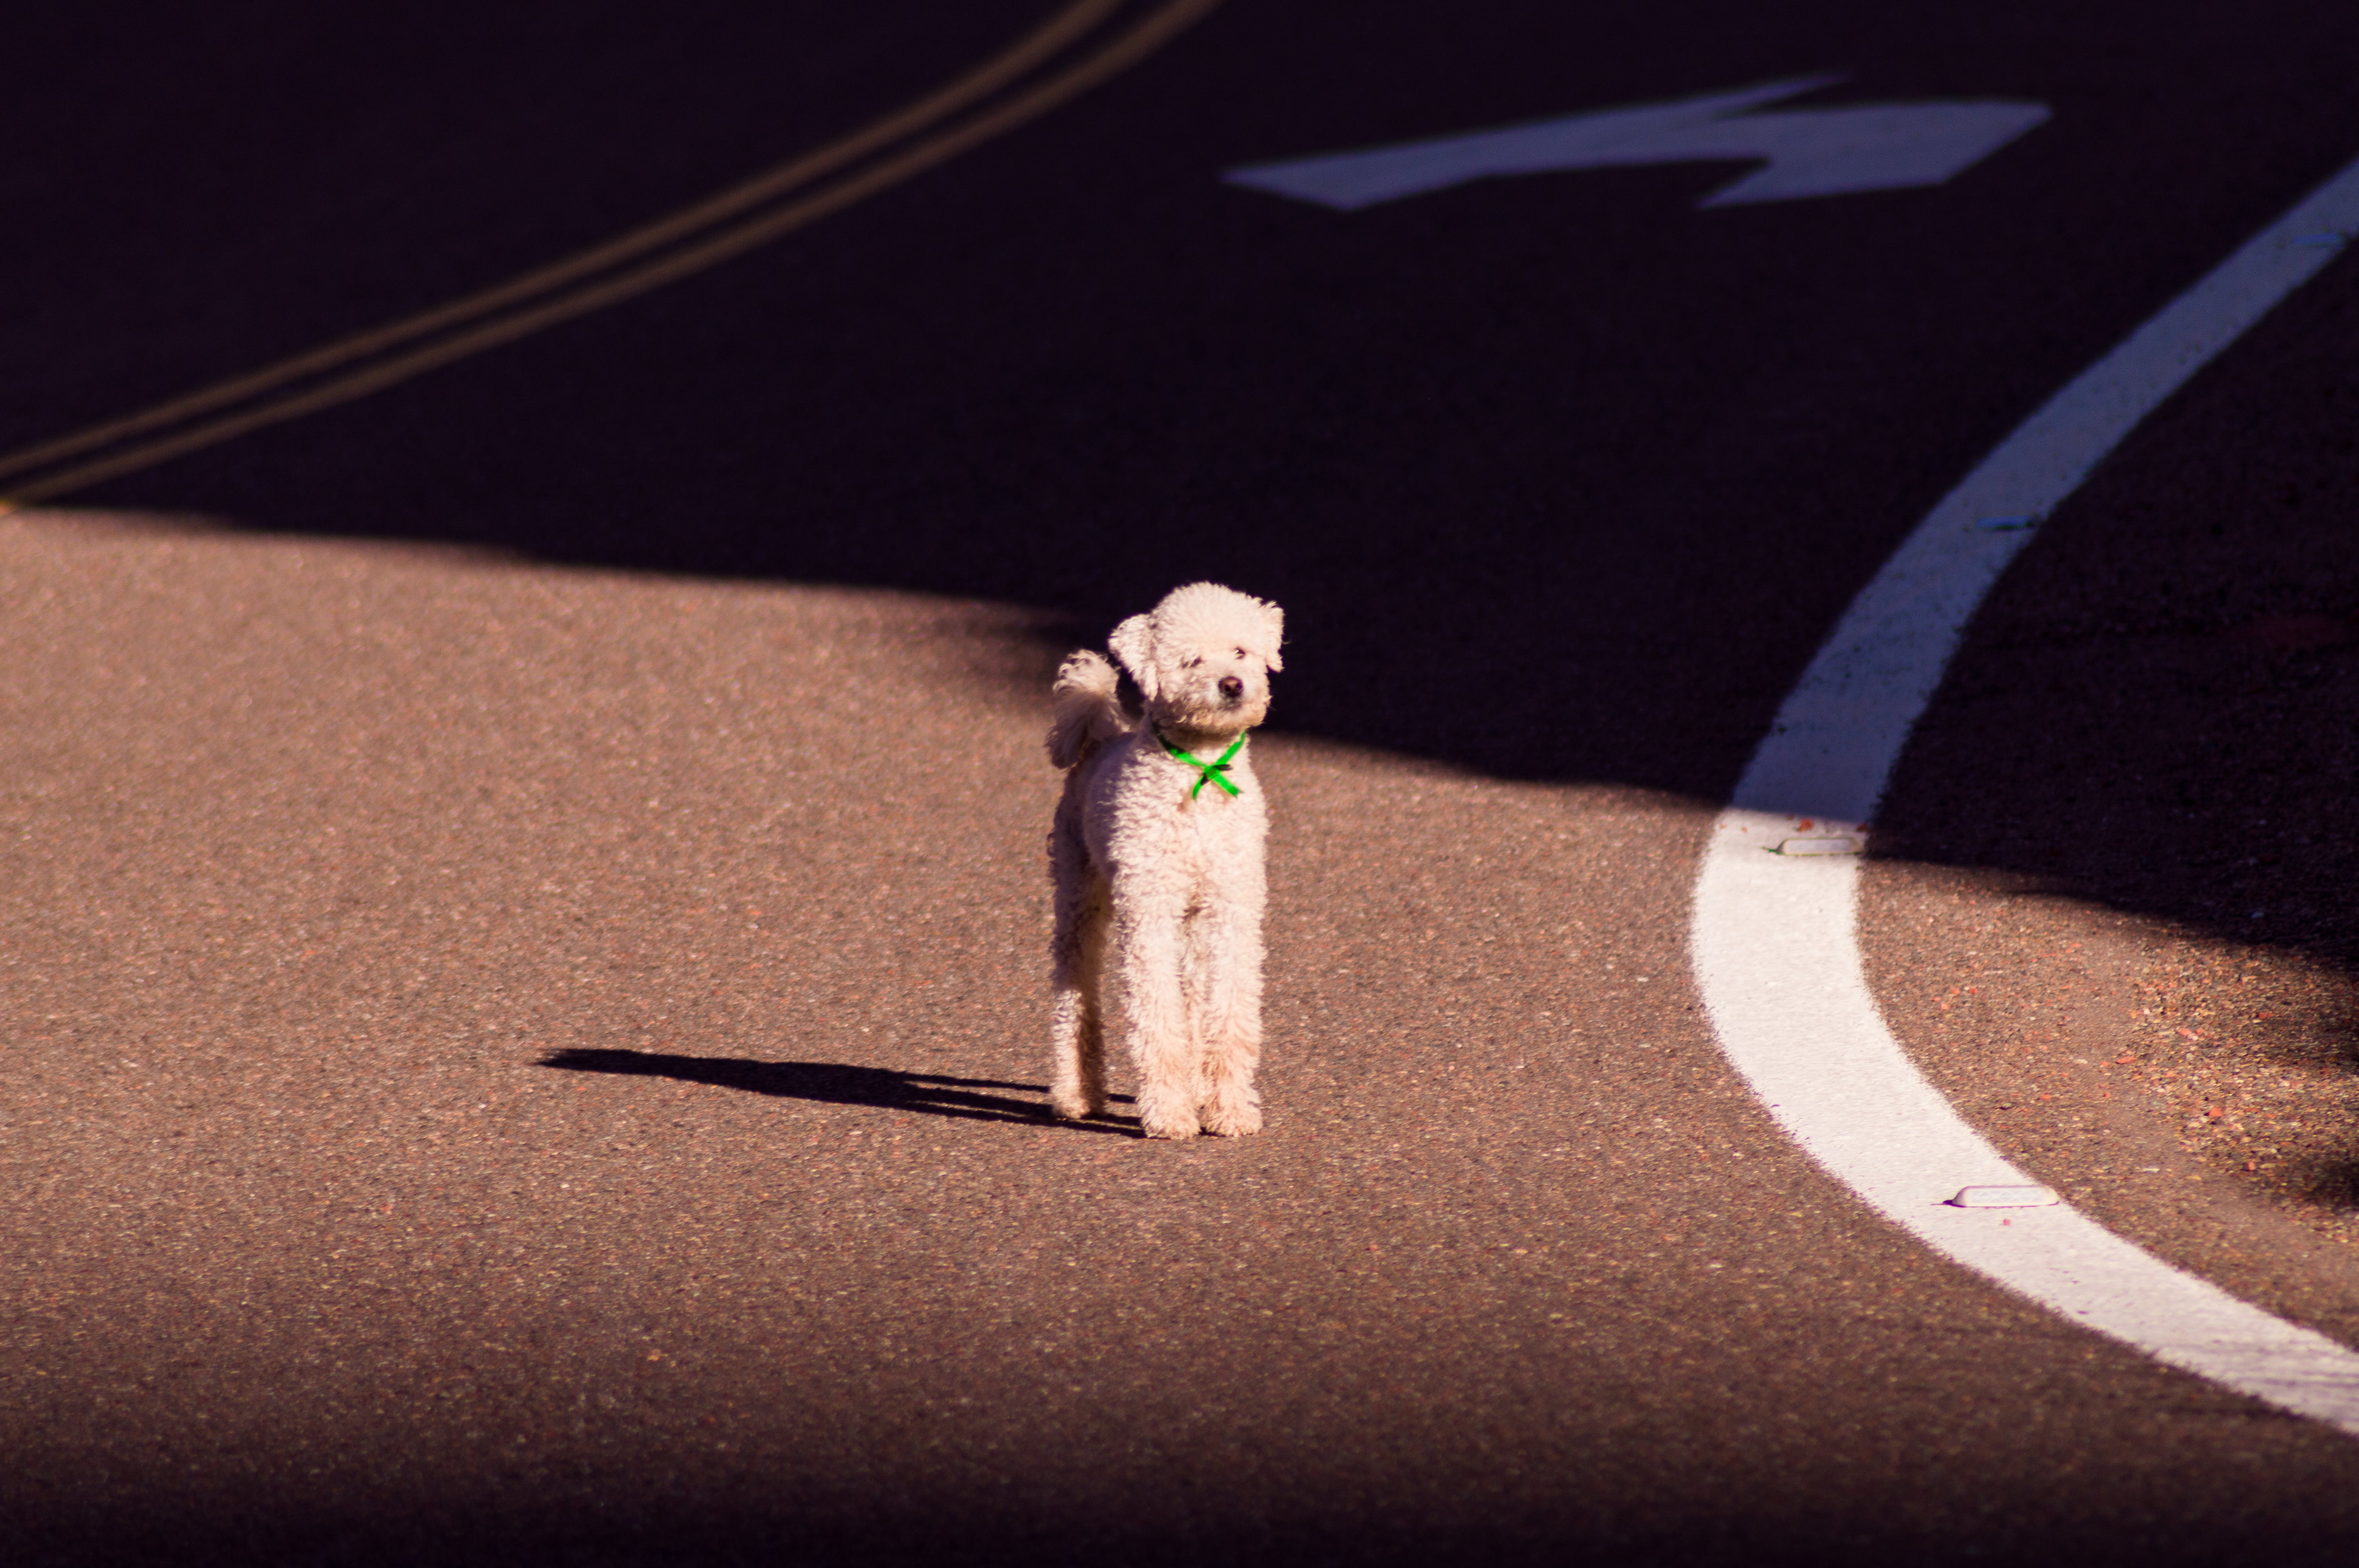 White Toy Poodle Standing on Road at Daytime